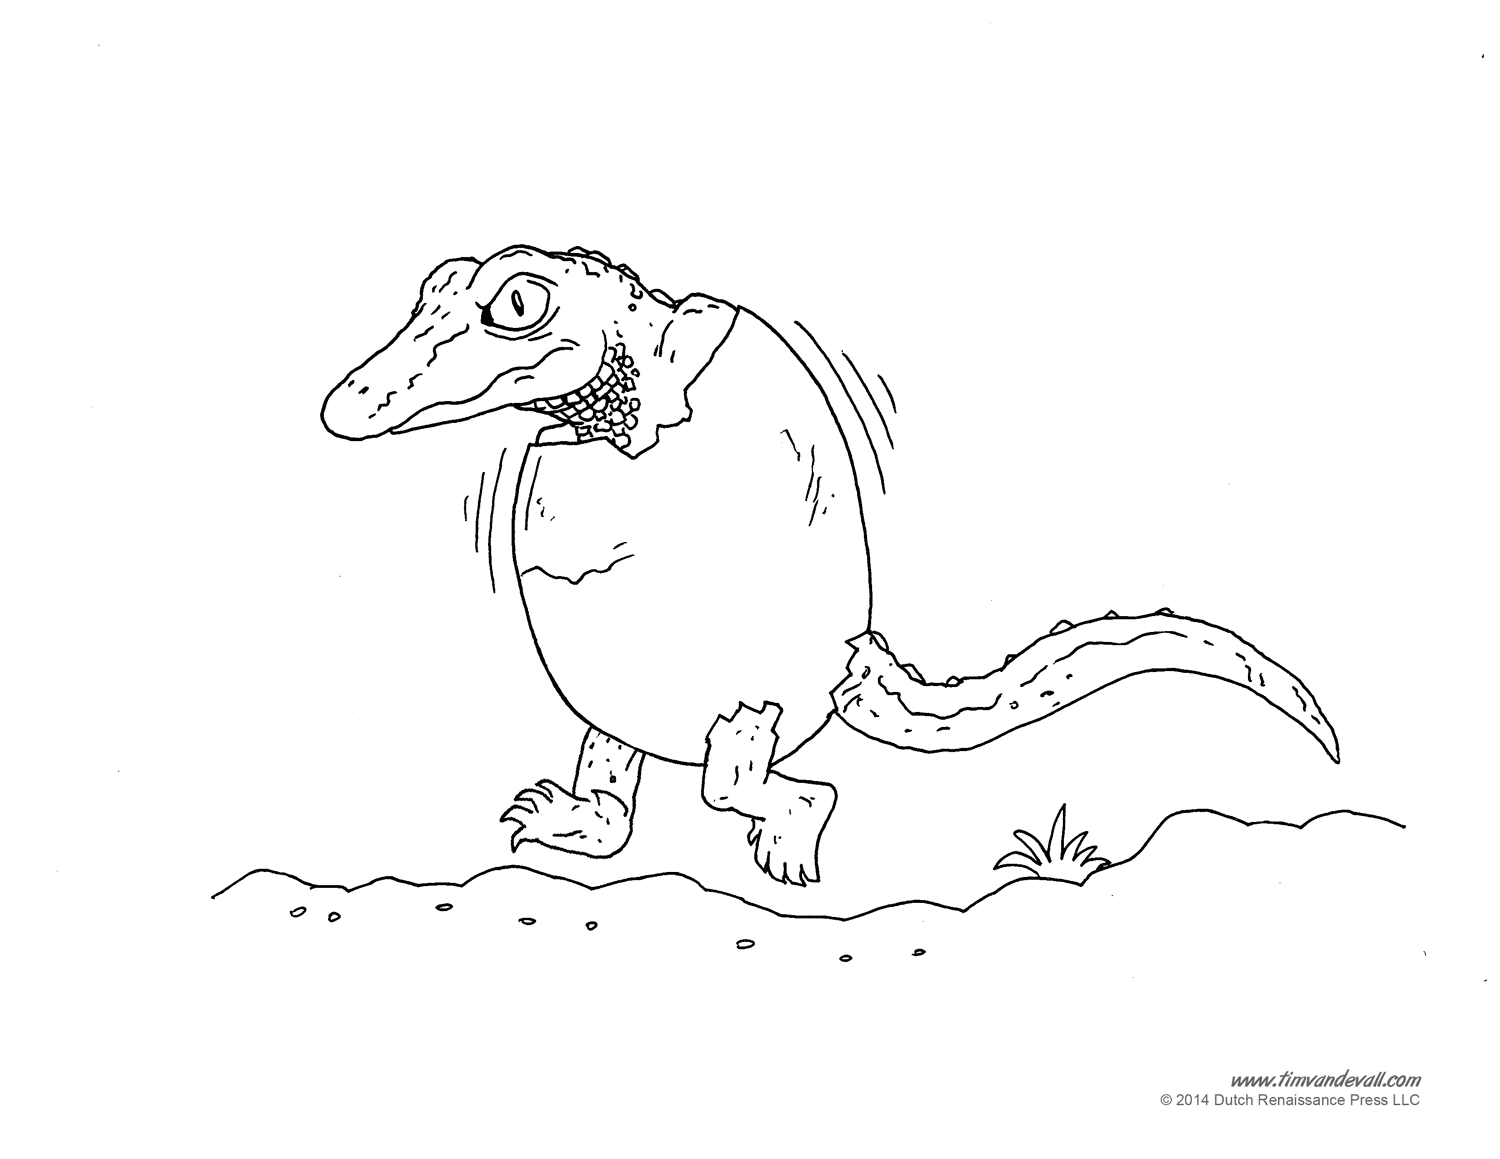 Alligator Coloring Page - Art Starts for Kids | 1159x1500